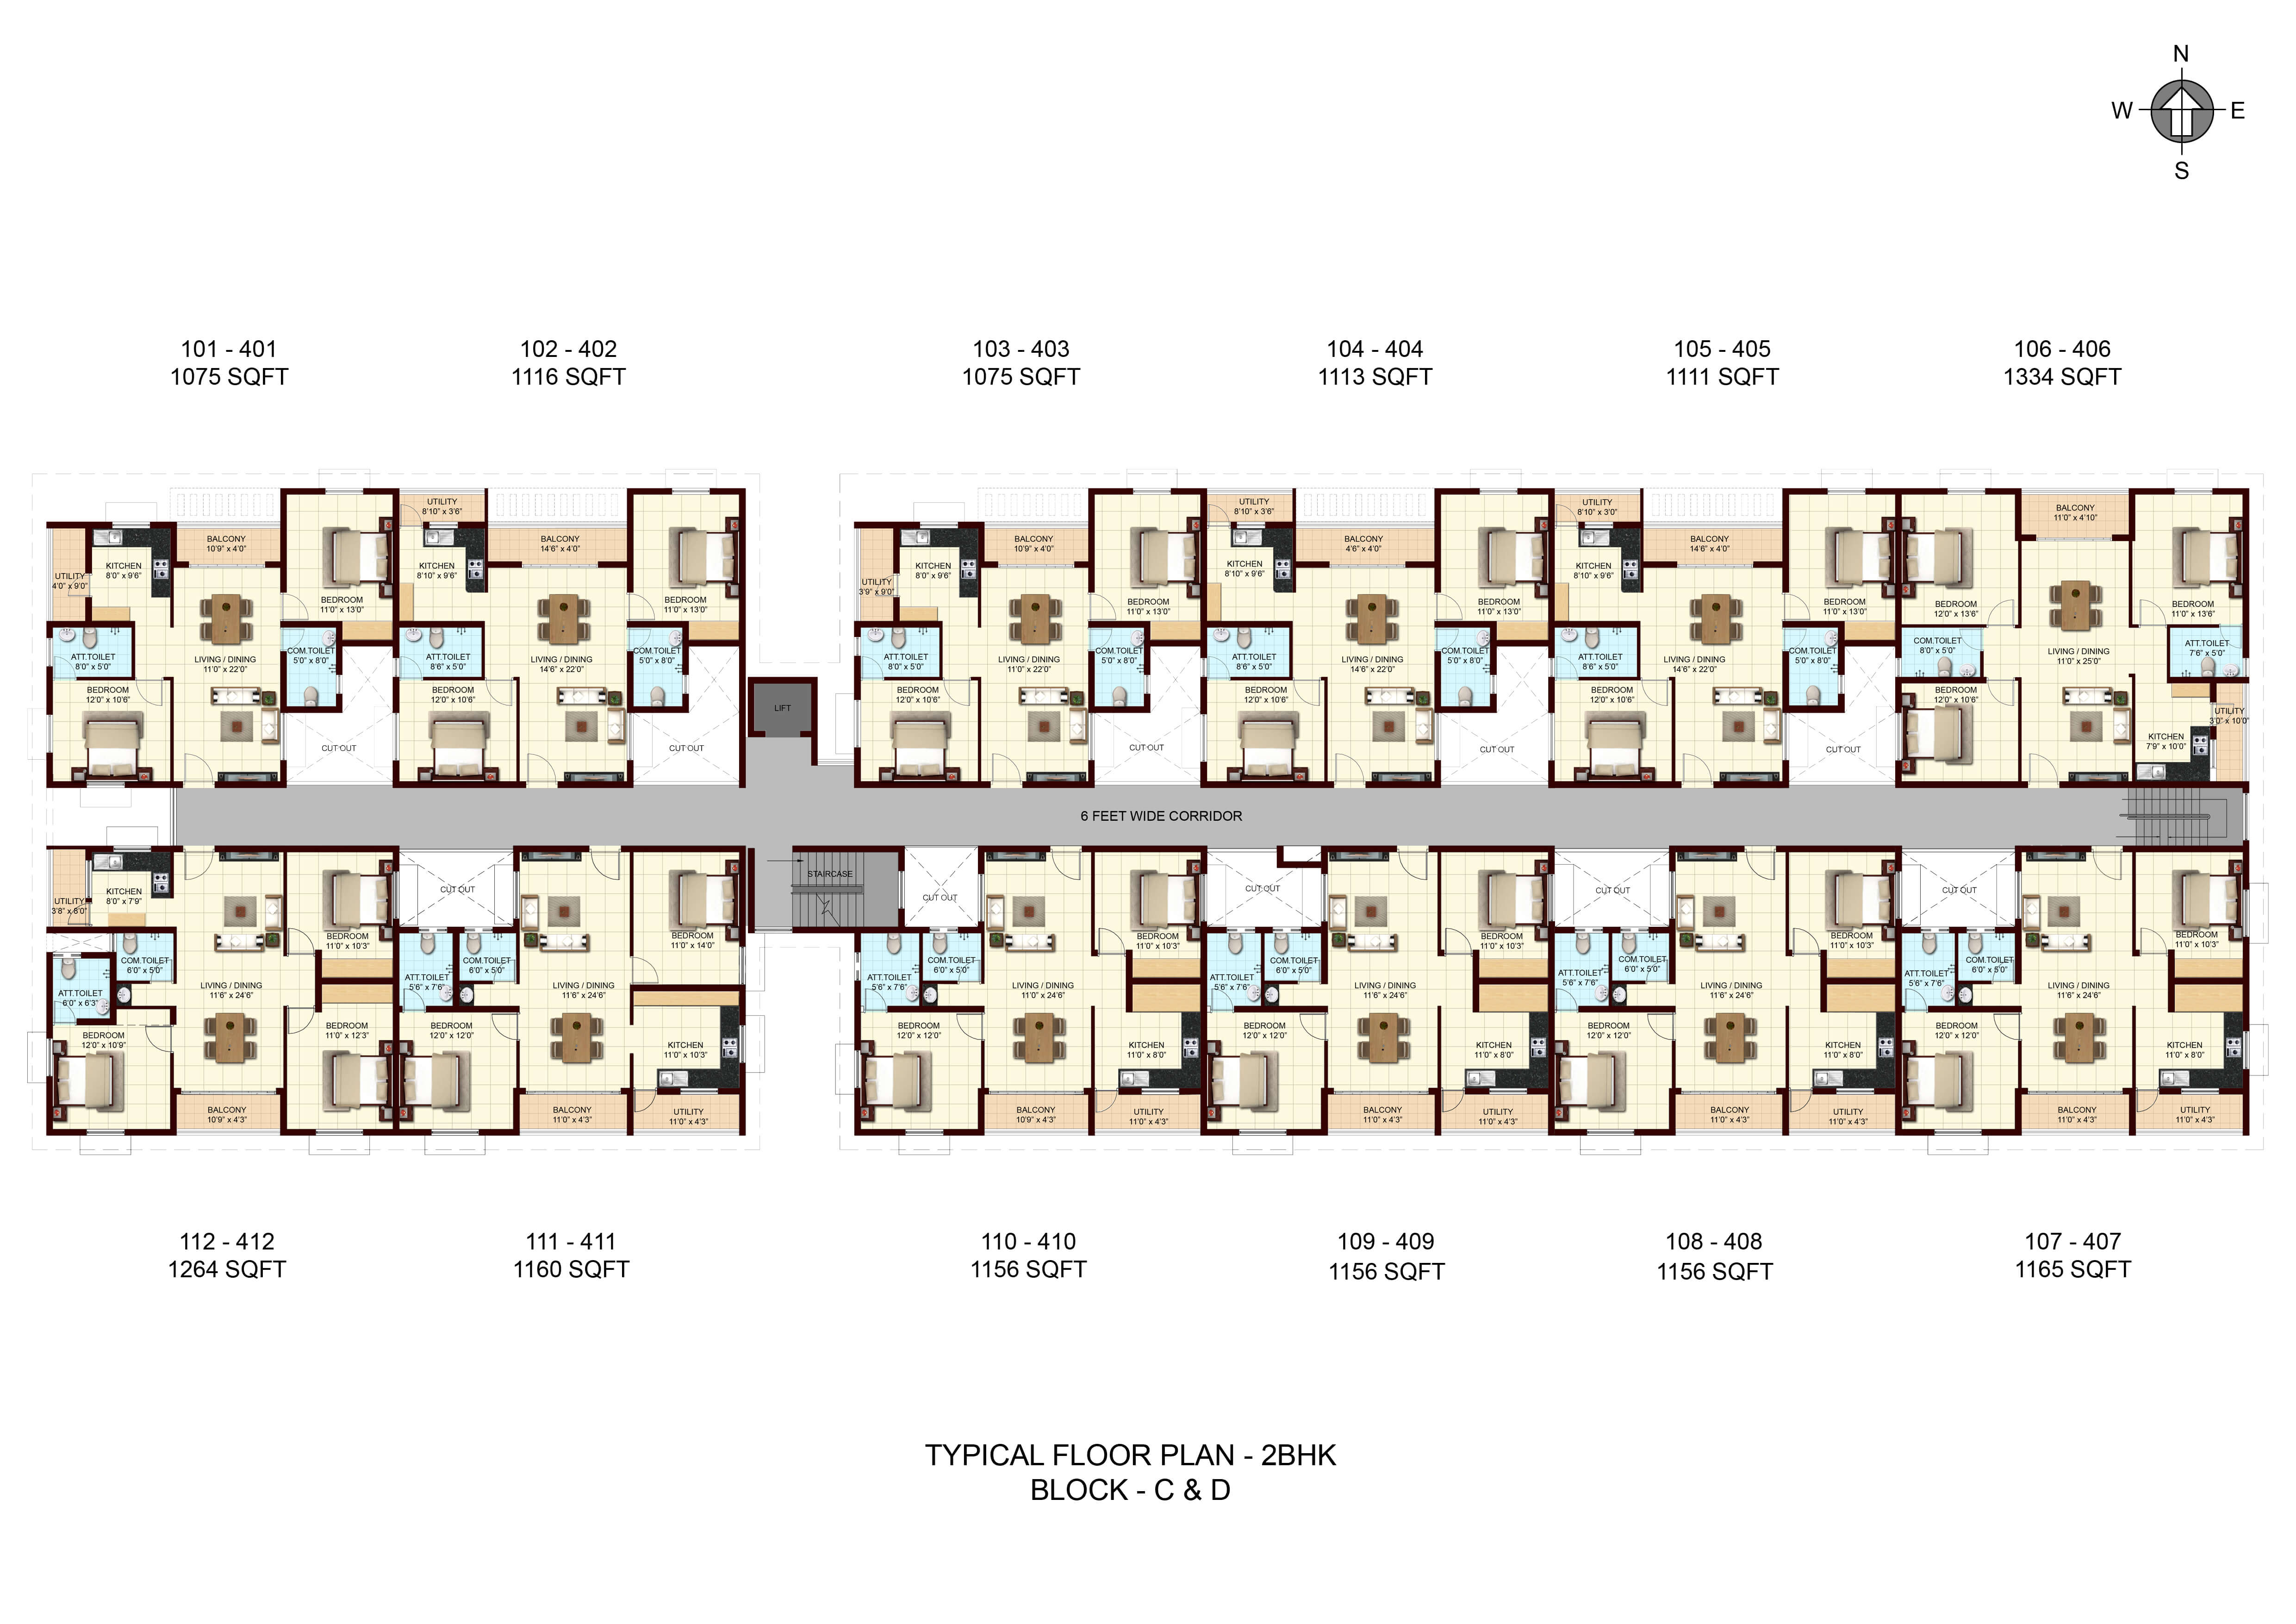 Typical Floor Plan - 2BHK